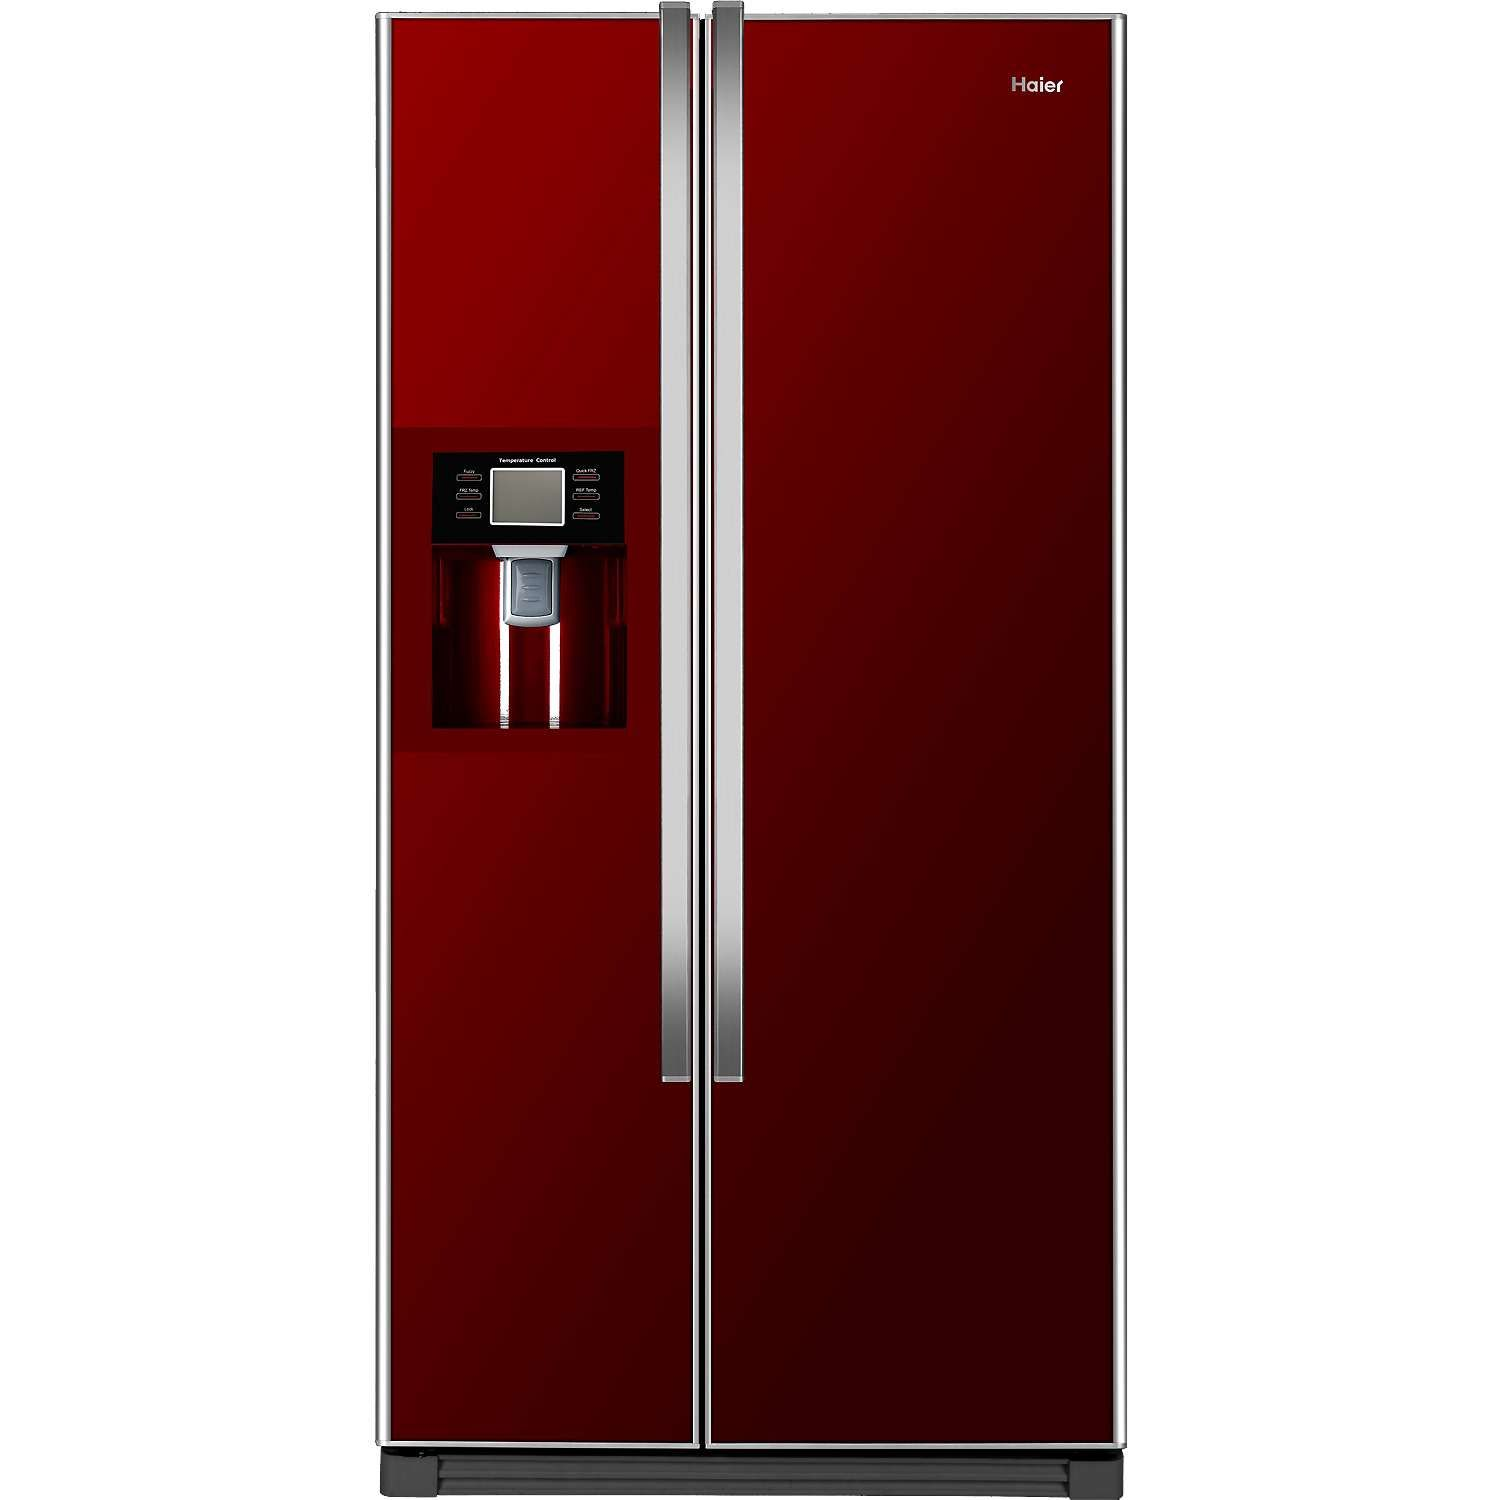 Red Fridge freezer for £1 150 Haier HRF 663CJR Adams